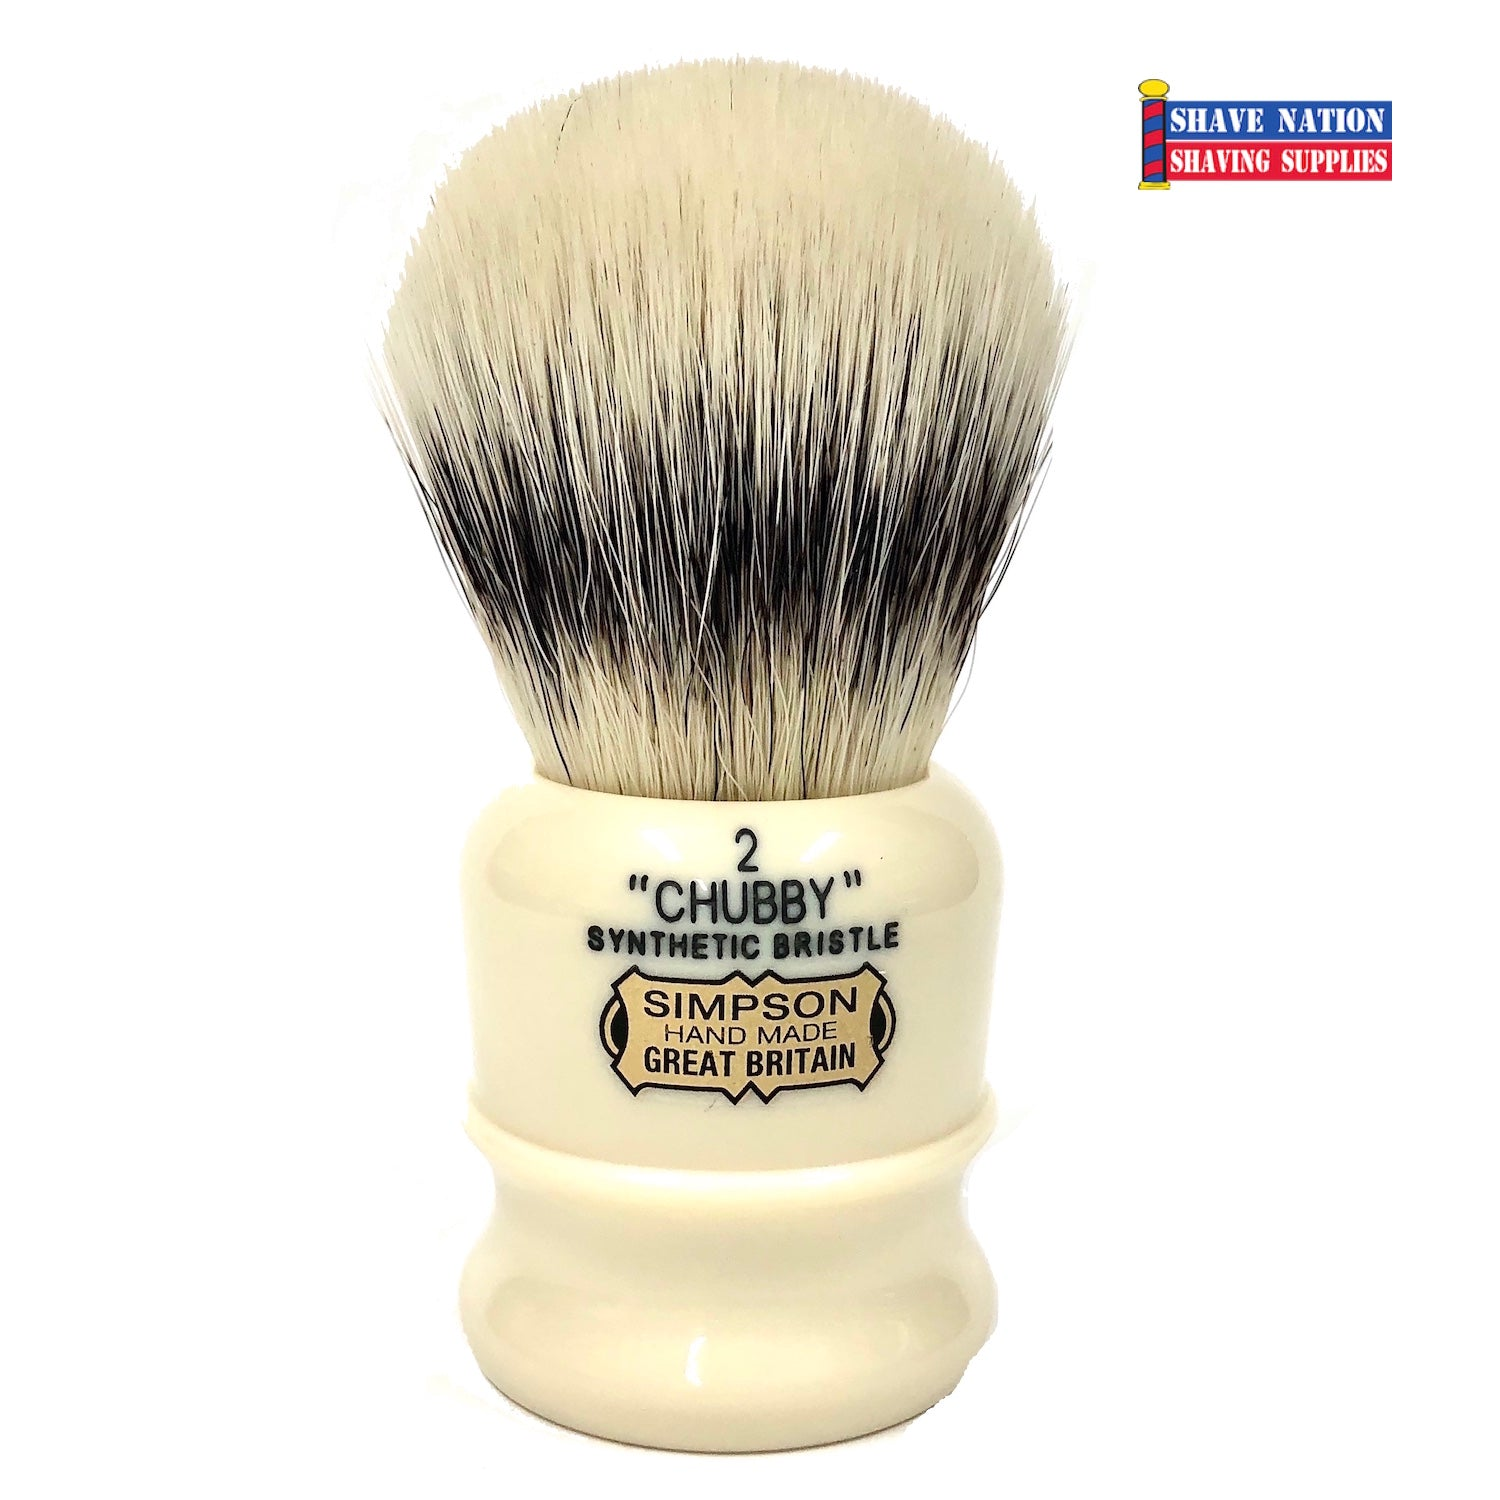 Simpsons Chubby 2 Synthetic Bristle Brush Faux Ivory Handle